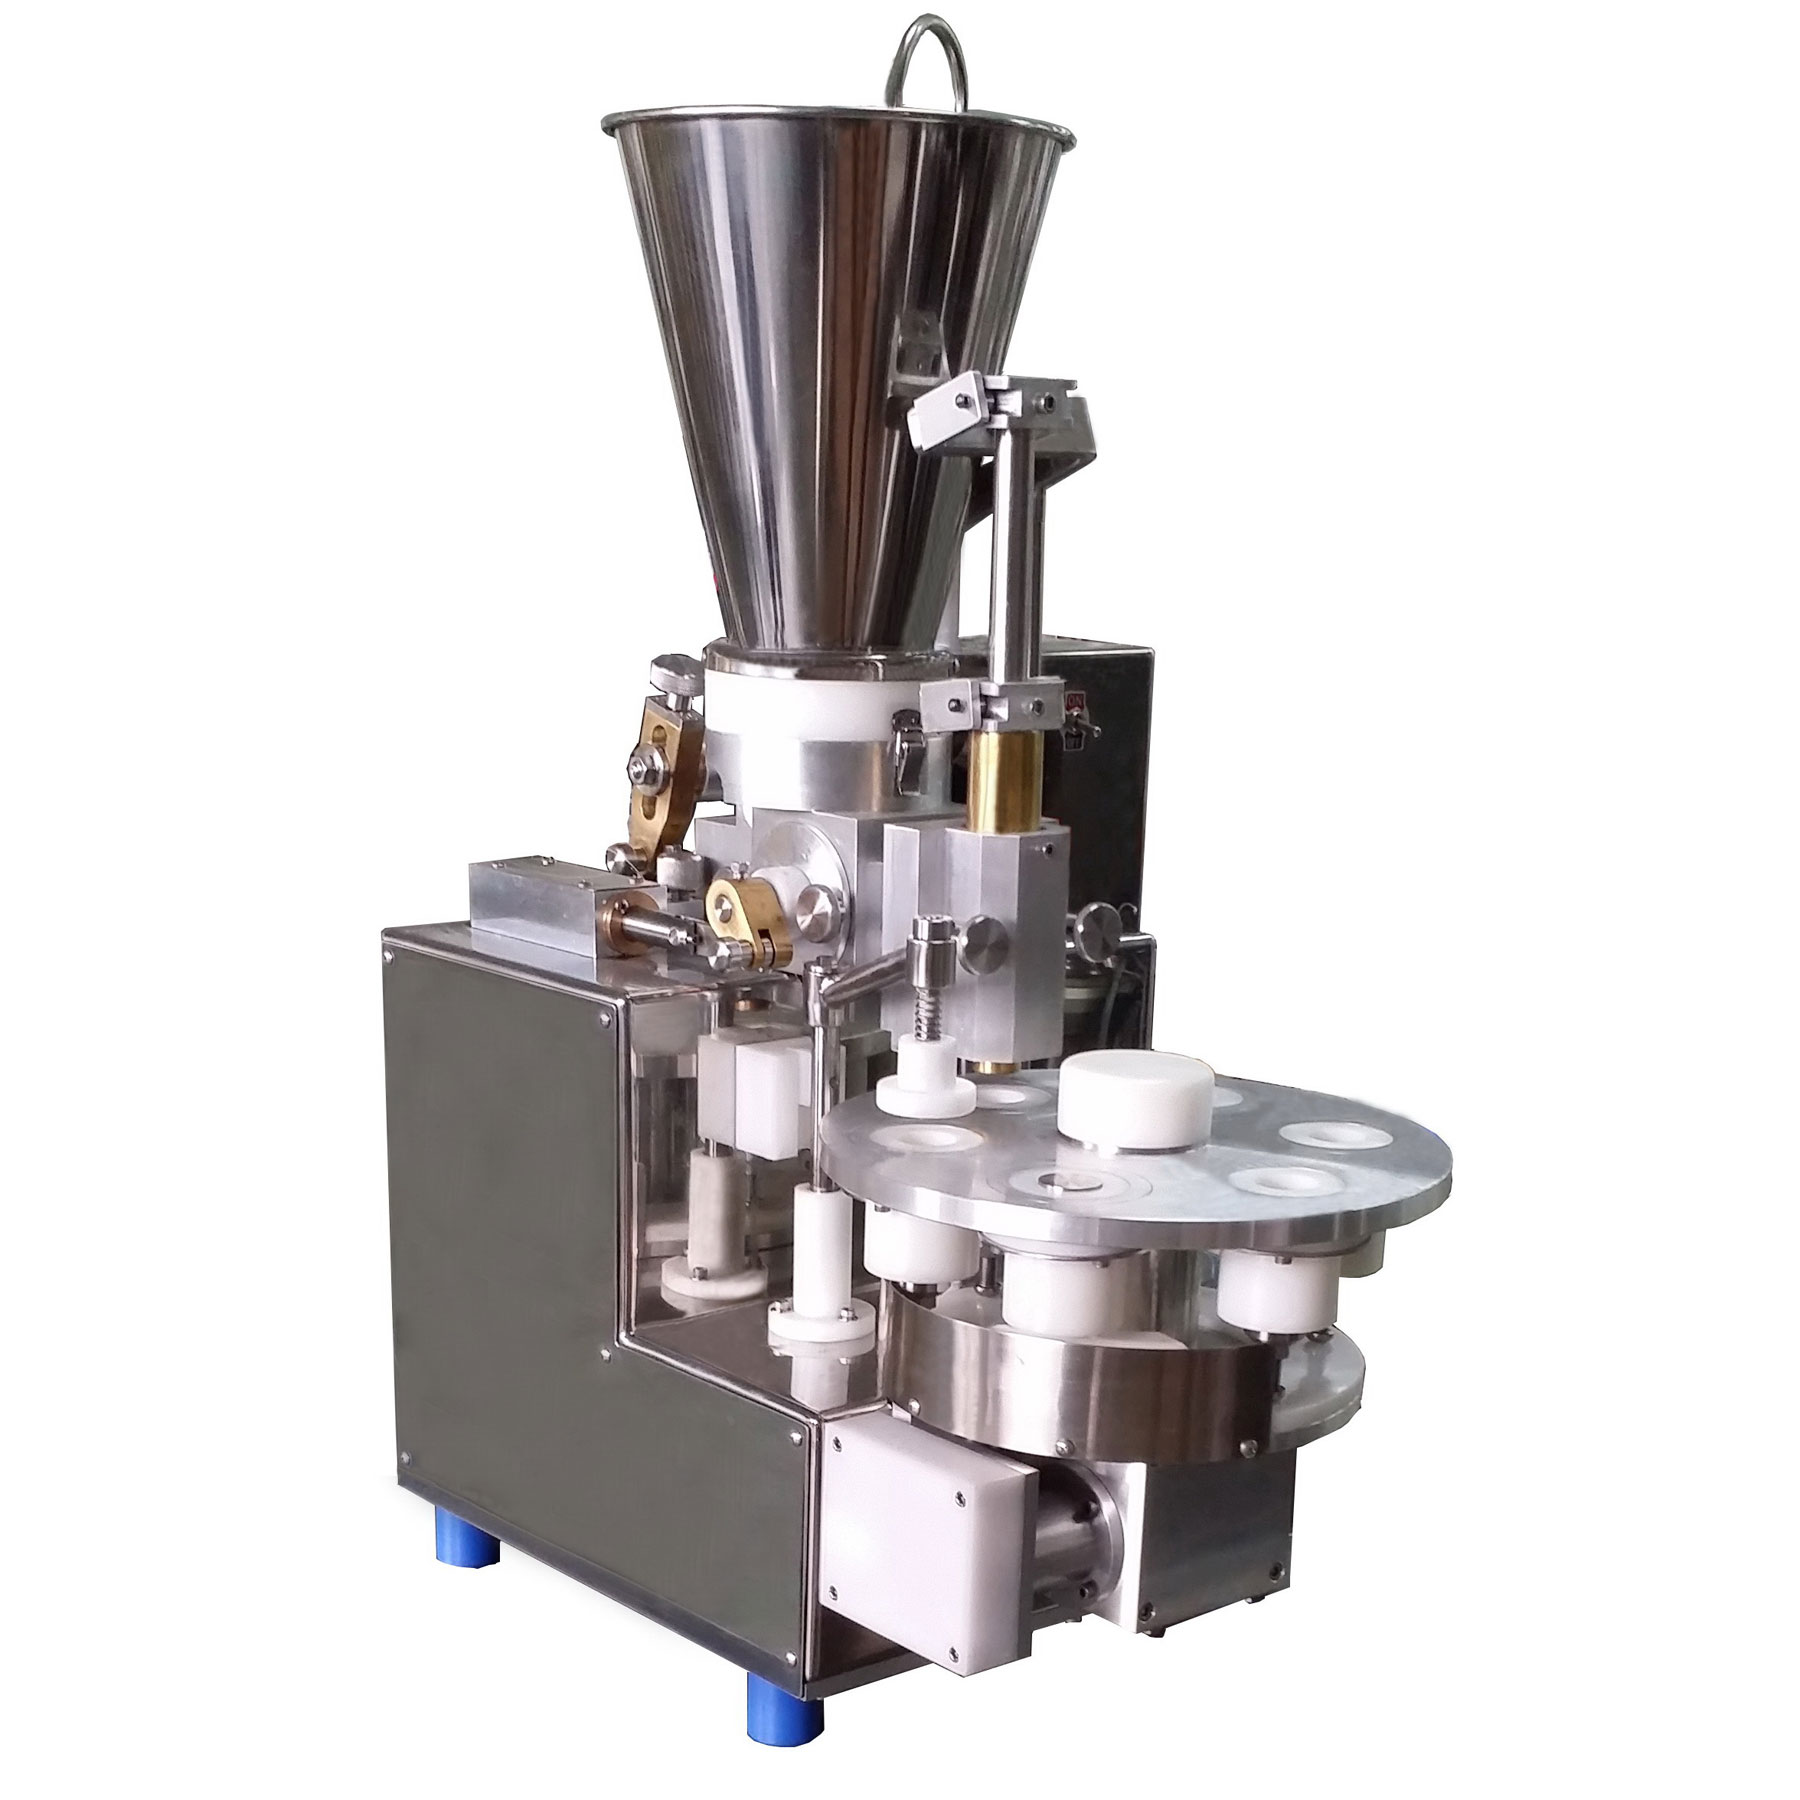 Semi automatic machine for the production of Shao-Mai,with lightweight and compact in design